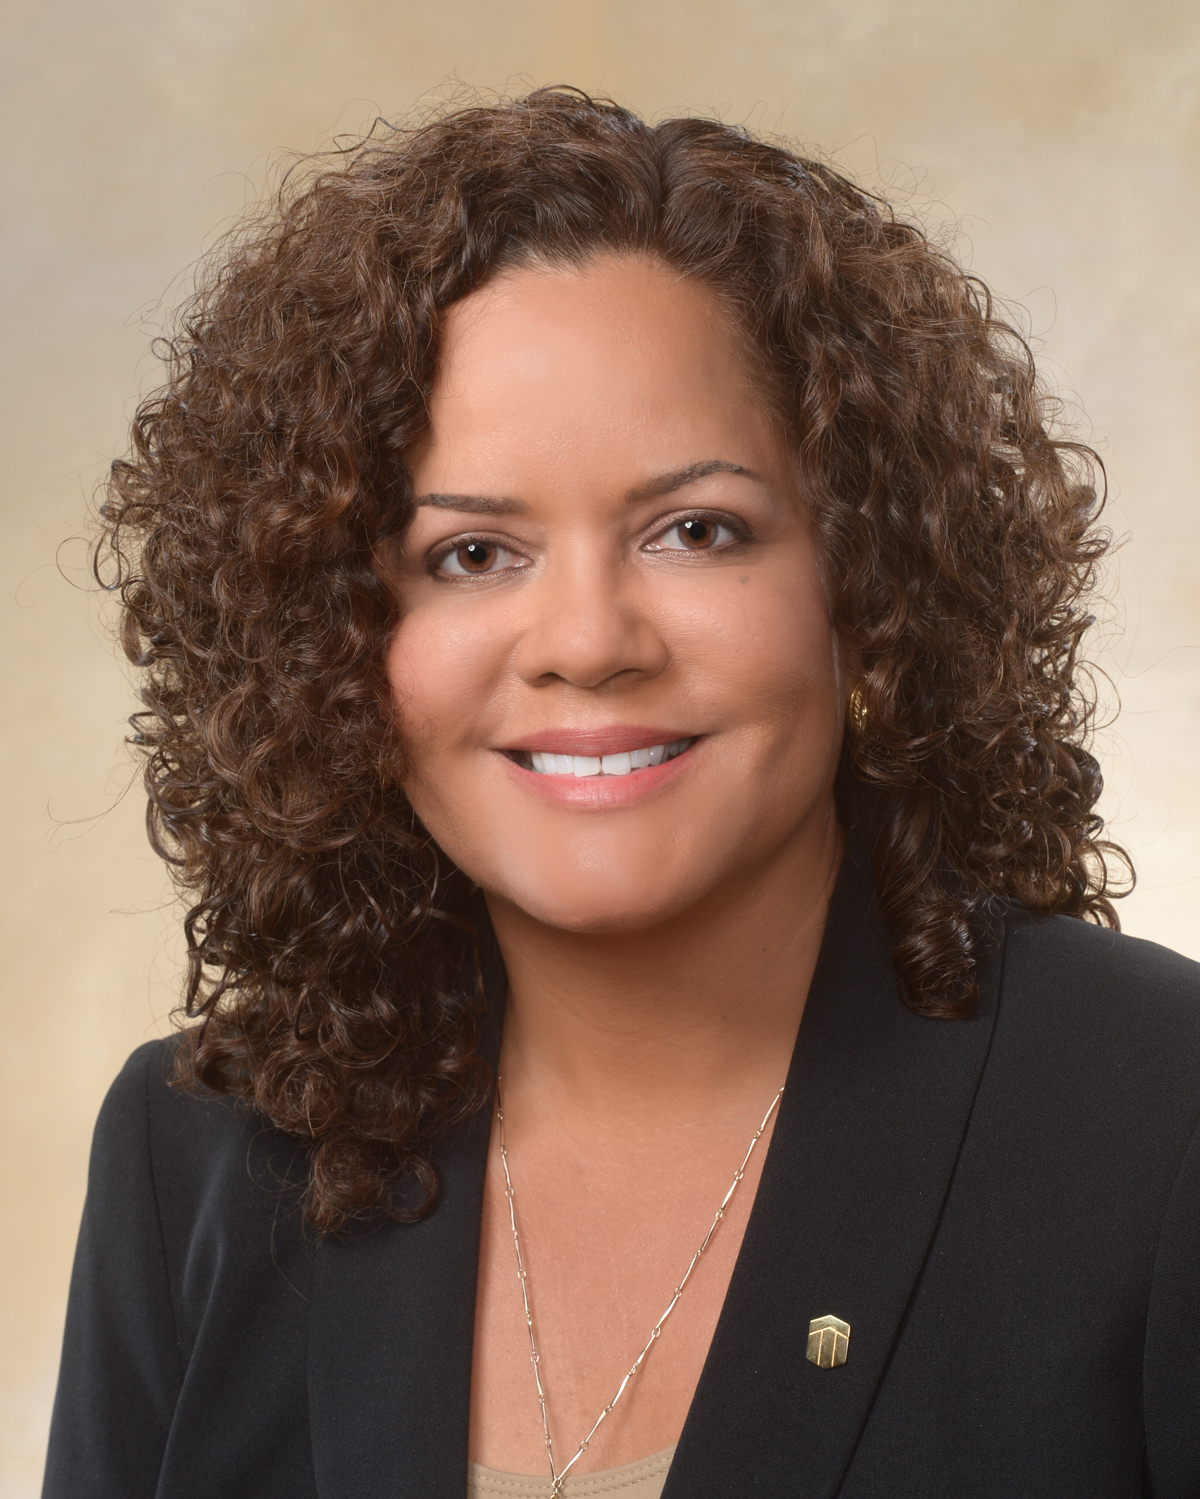 Jadira Hoptry Director of Community Lending and Development for First Merchants Bank photo